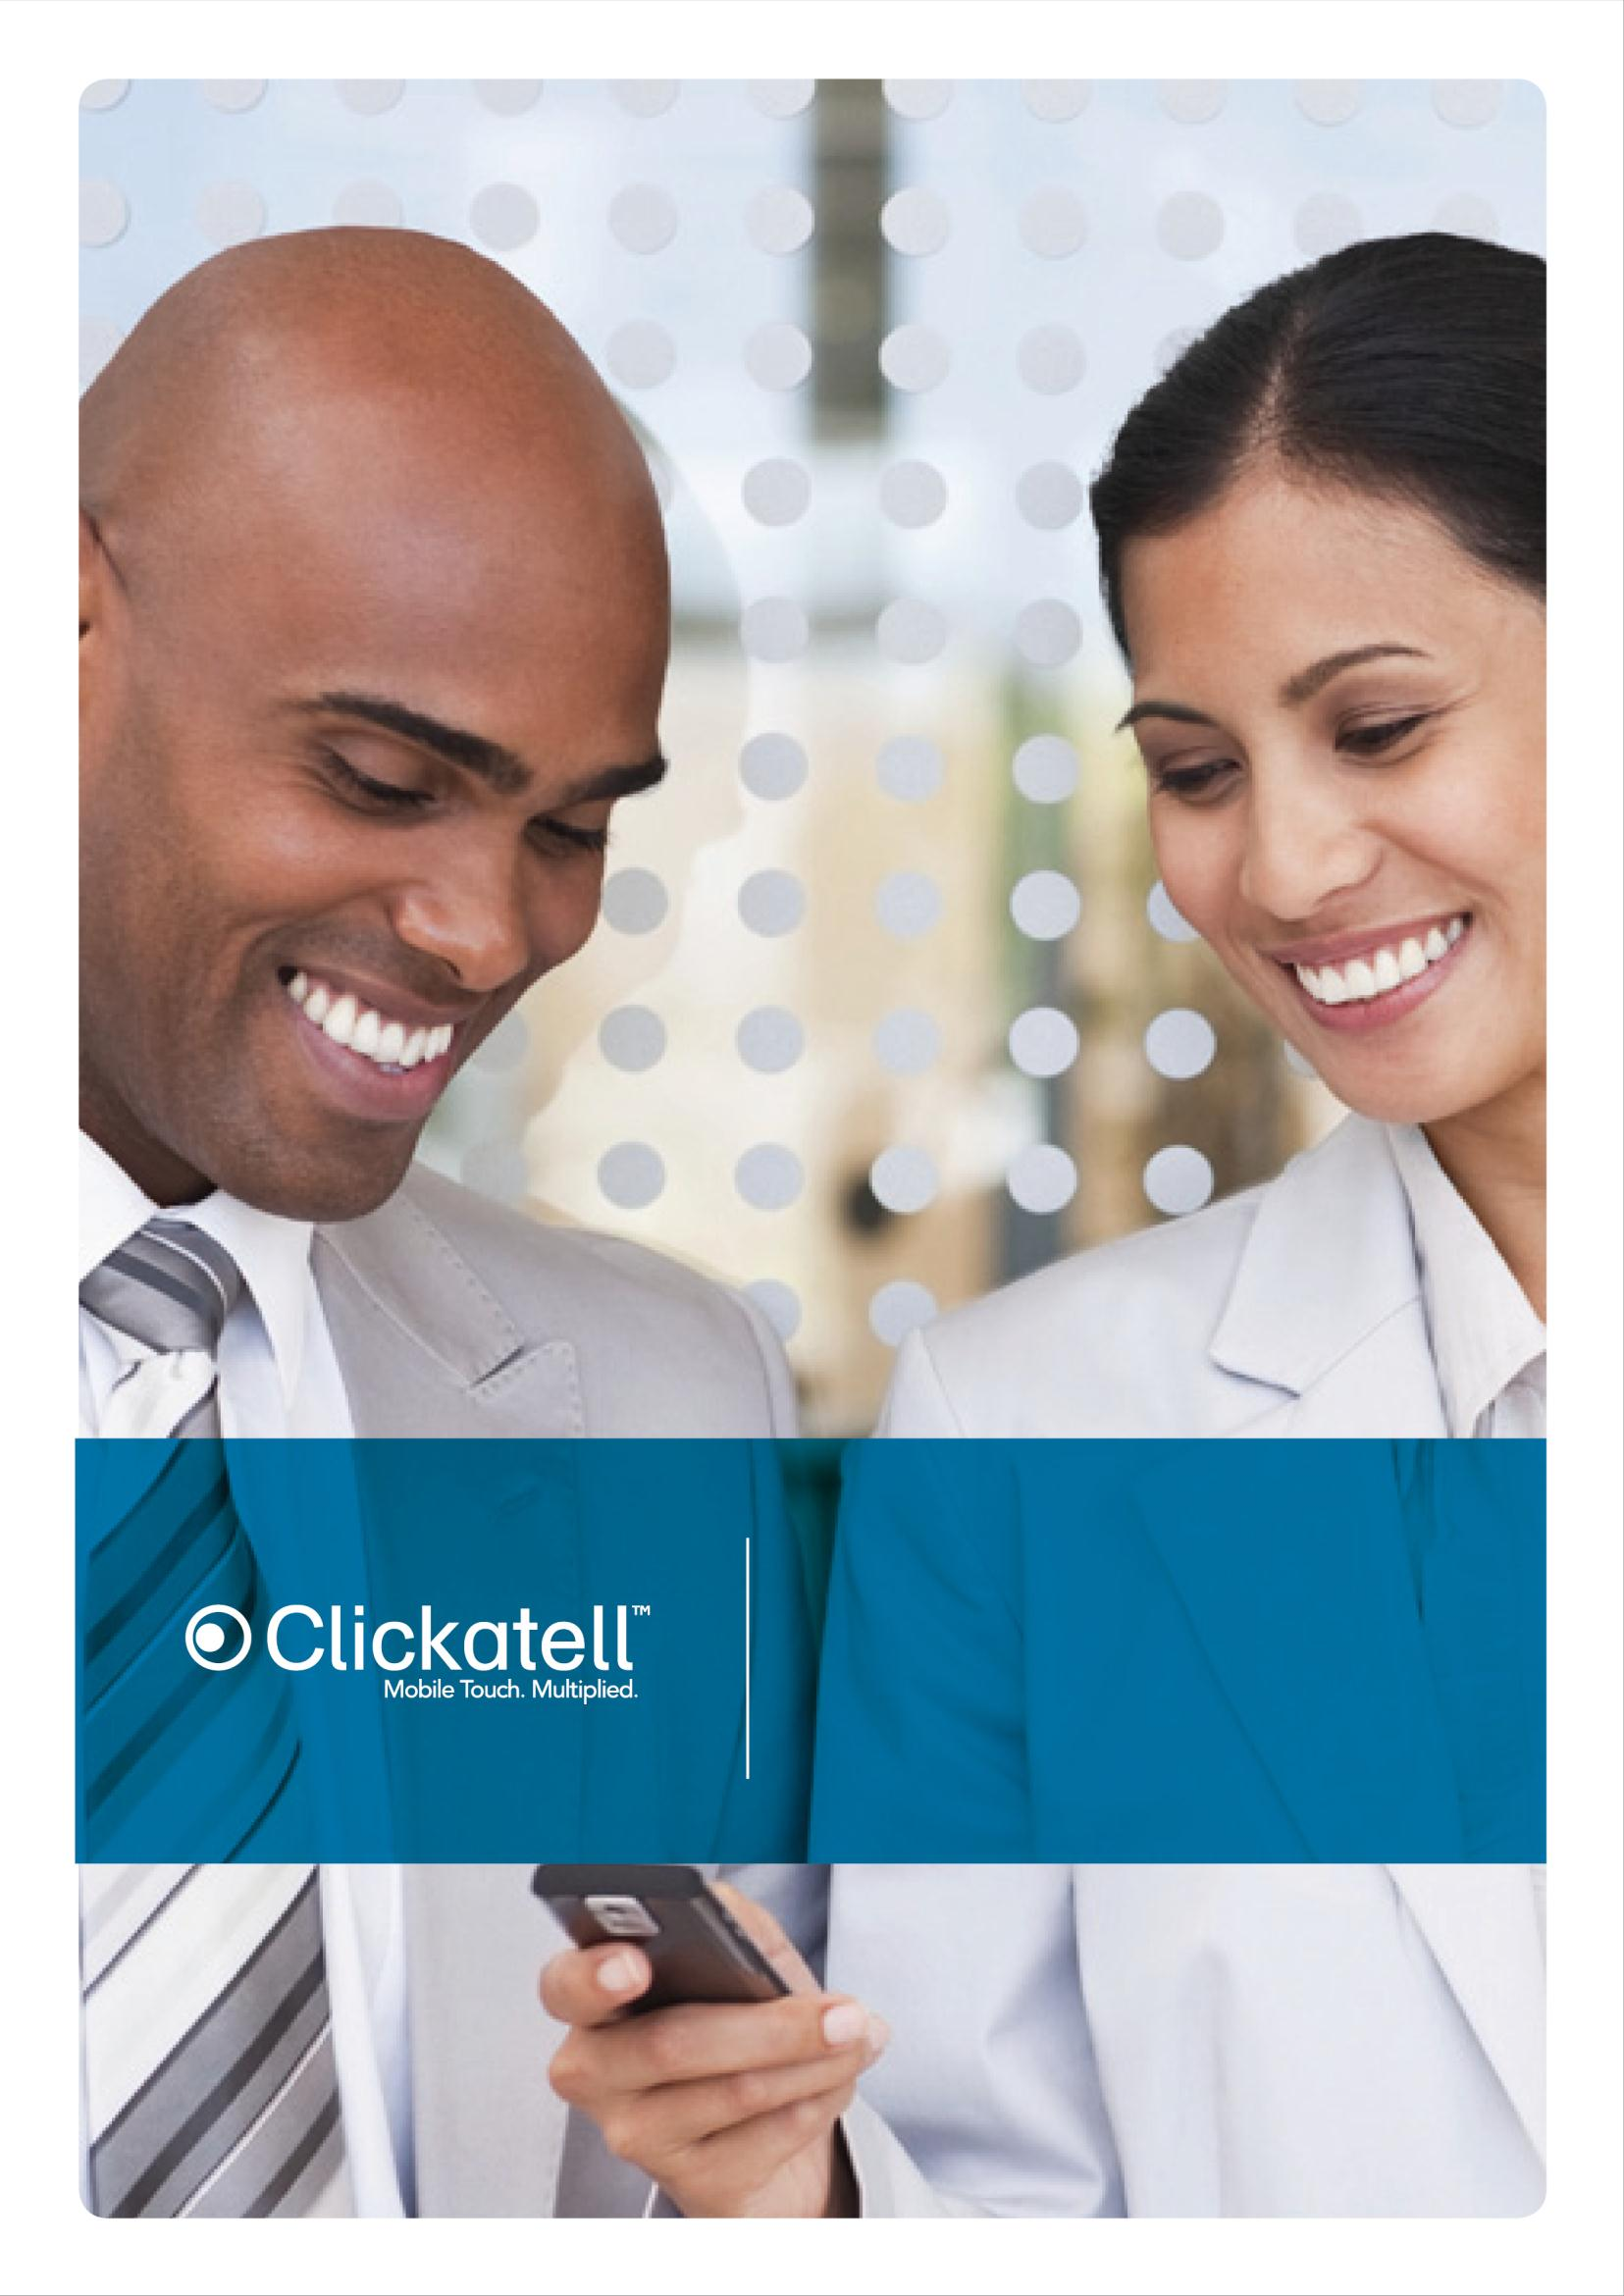 Clickatell two-way